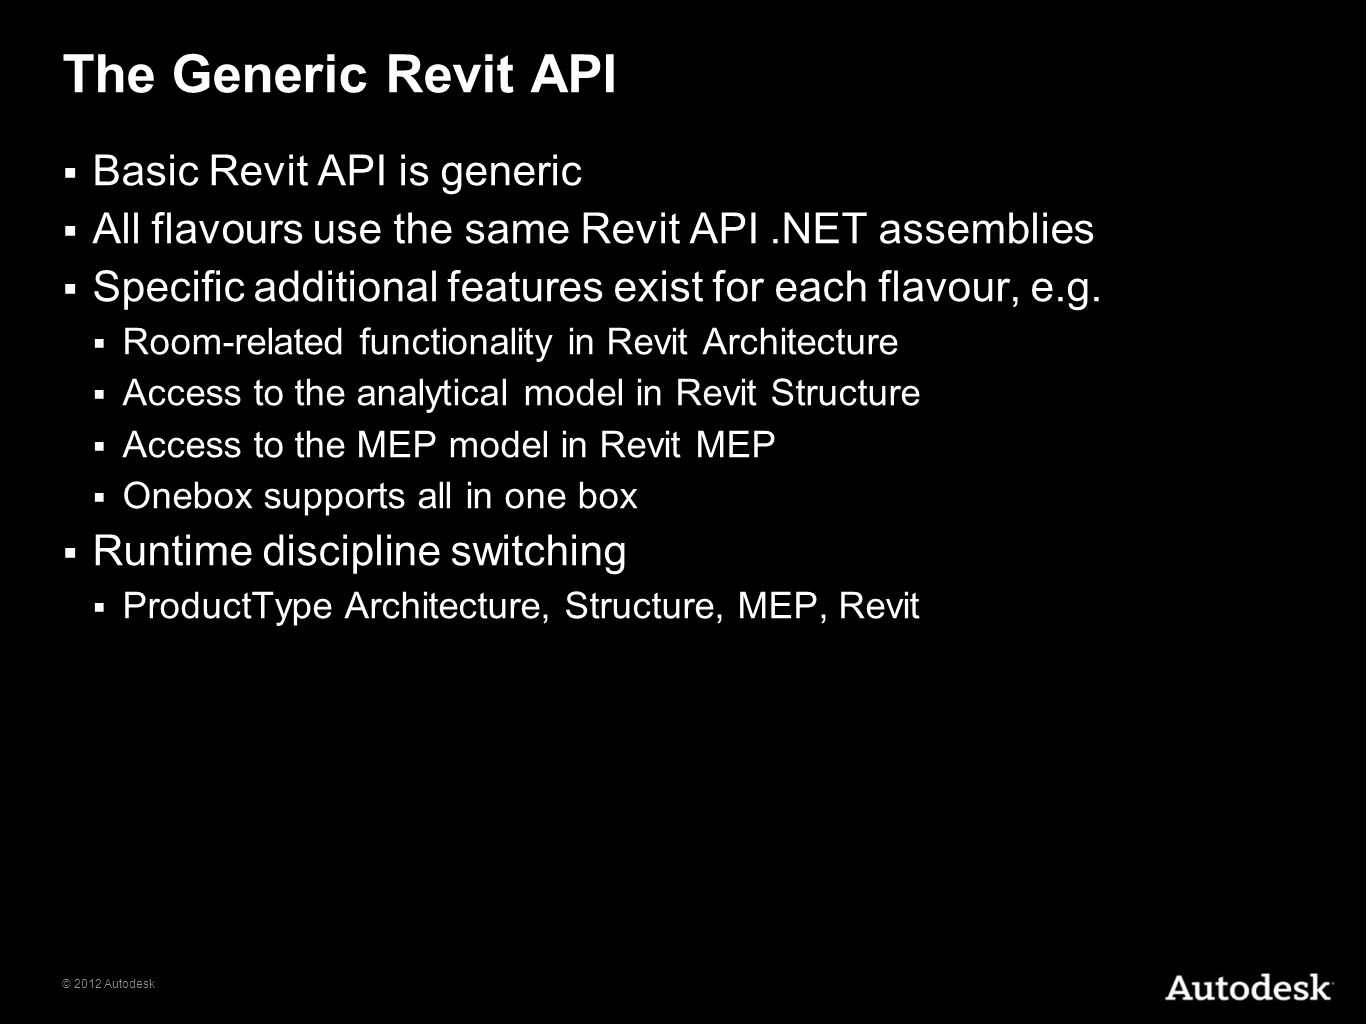 © 2012 Autodesk The Generic Revit API Basic Revit API is generic All flavours use the same Revit API.NET assemblies Specific additional features exist